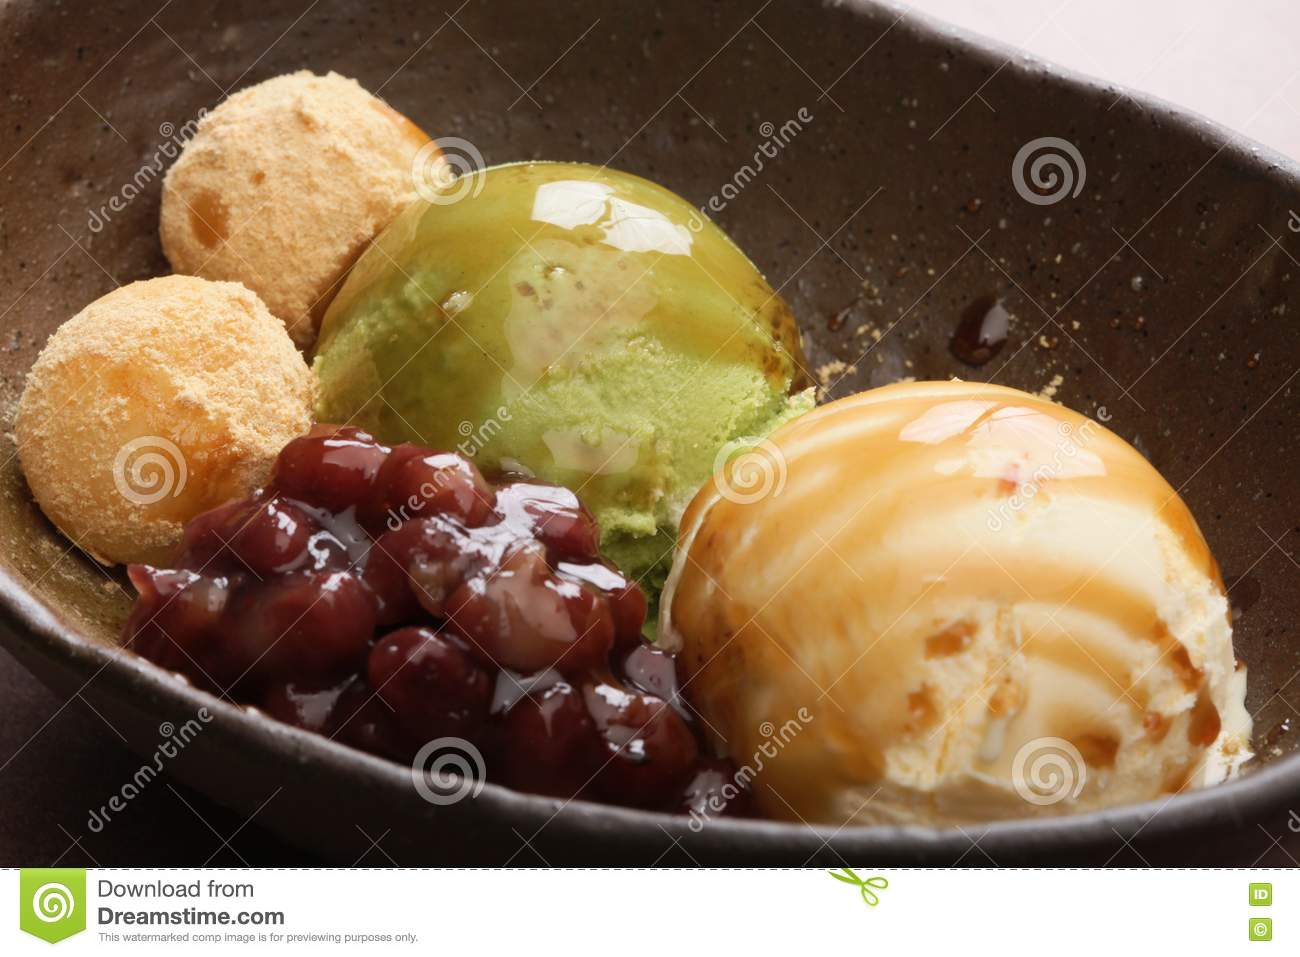 Kyoto style of ice cream with black bean in big stew